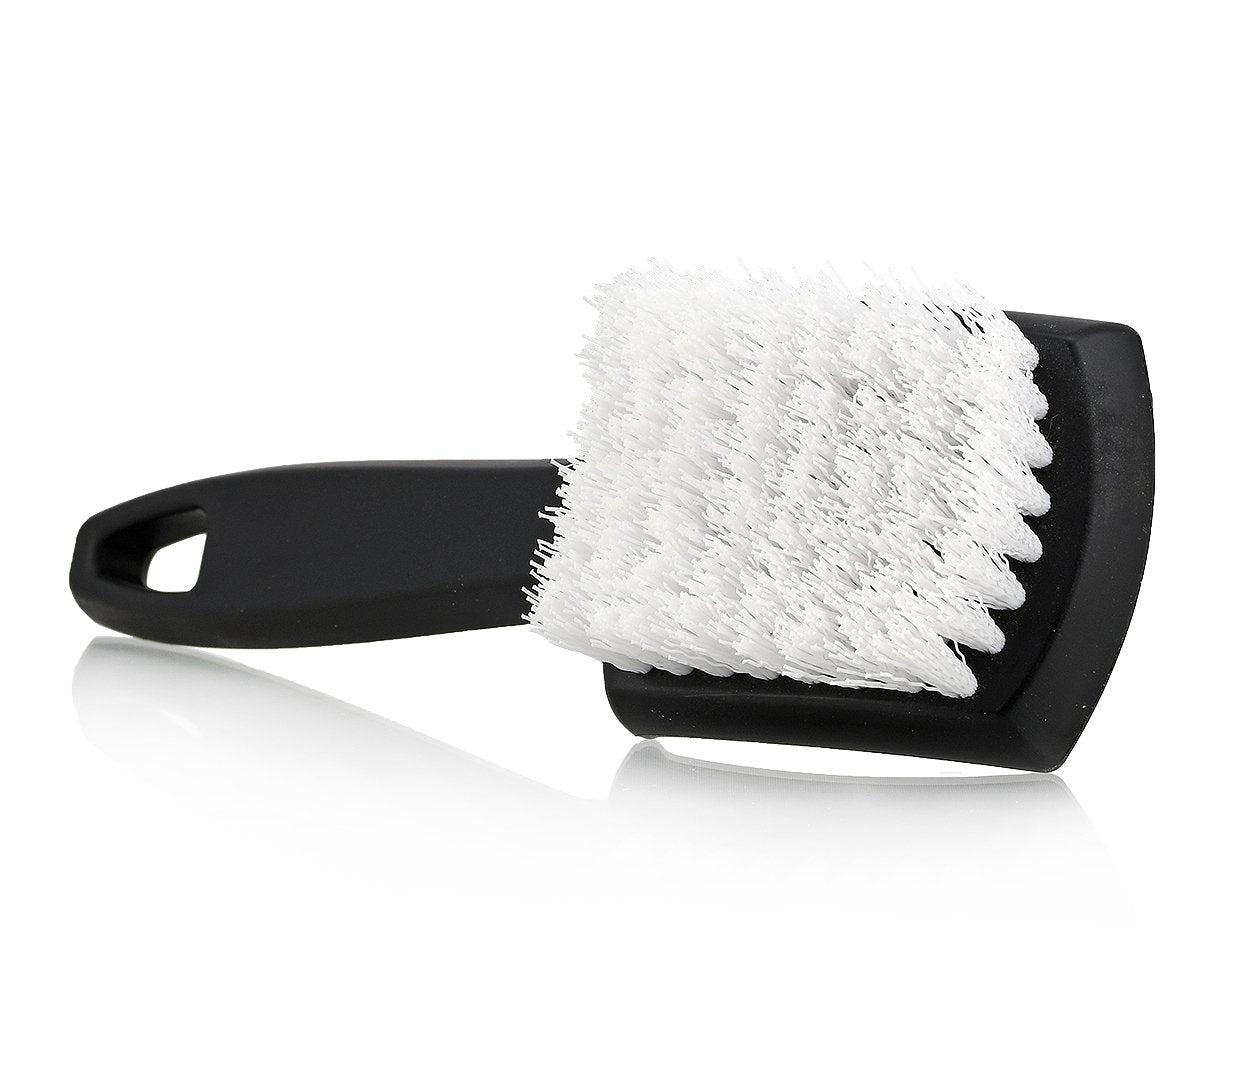 Tyre Cleaning Brush